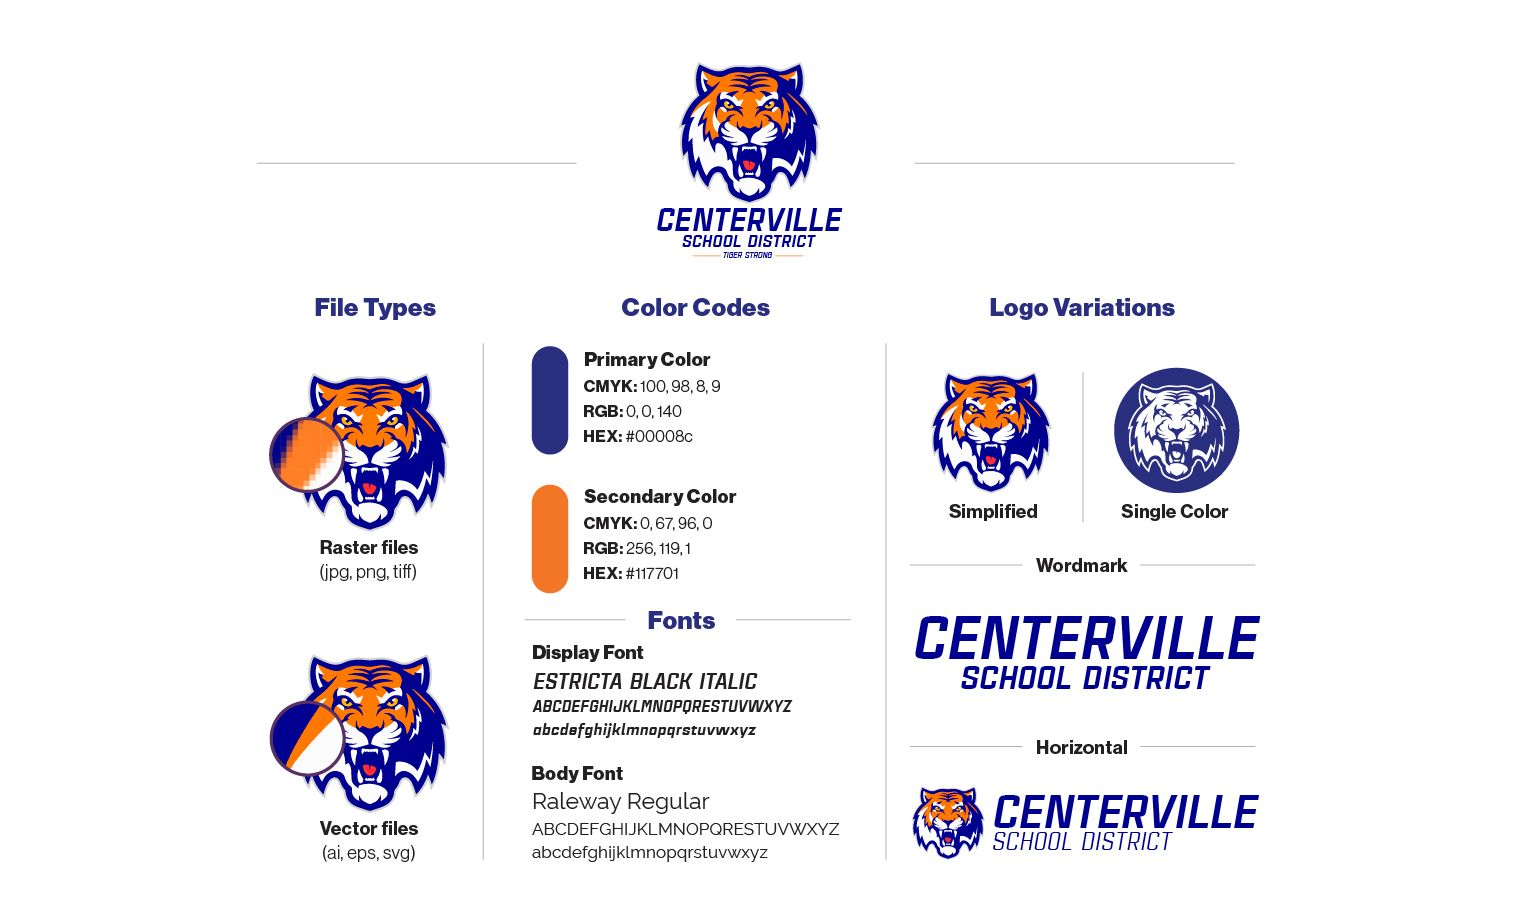 Image: An example brand overview for a fictional school district, Centerville Public Schools. This brand overview contains all the information you should have on hand for your school brand, such as specific display and body fonts, exact color codes, and assorted logo variations. All of this is information you'll need to flesh out for your particular school brand.